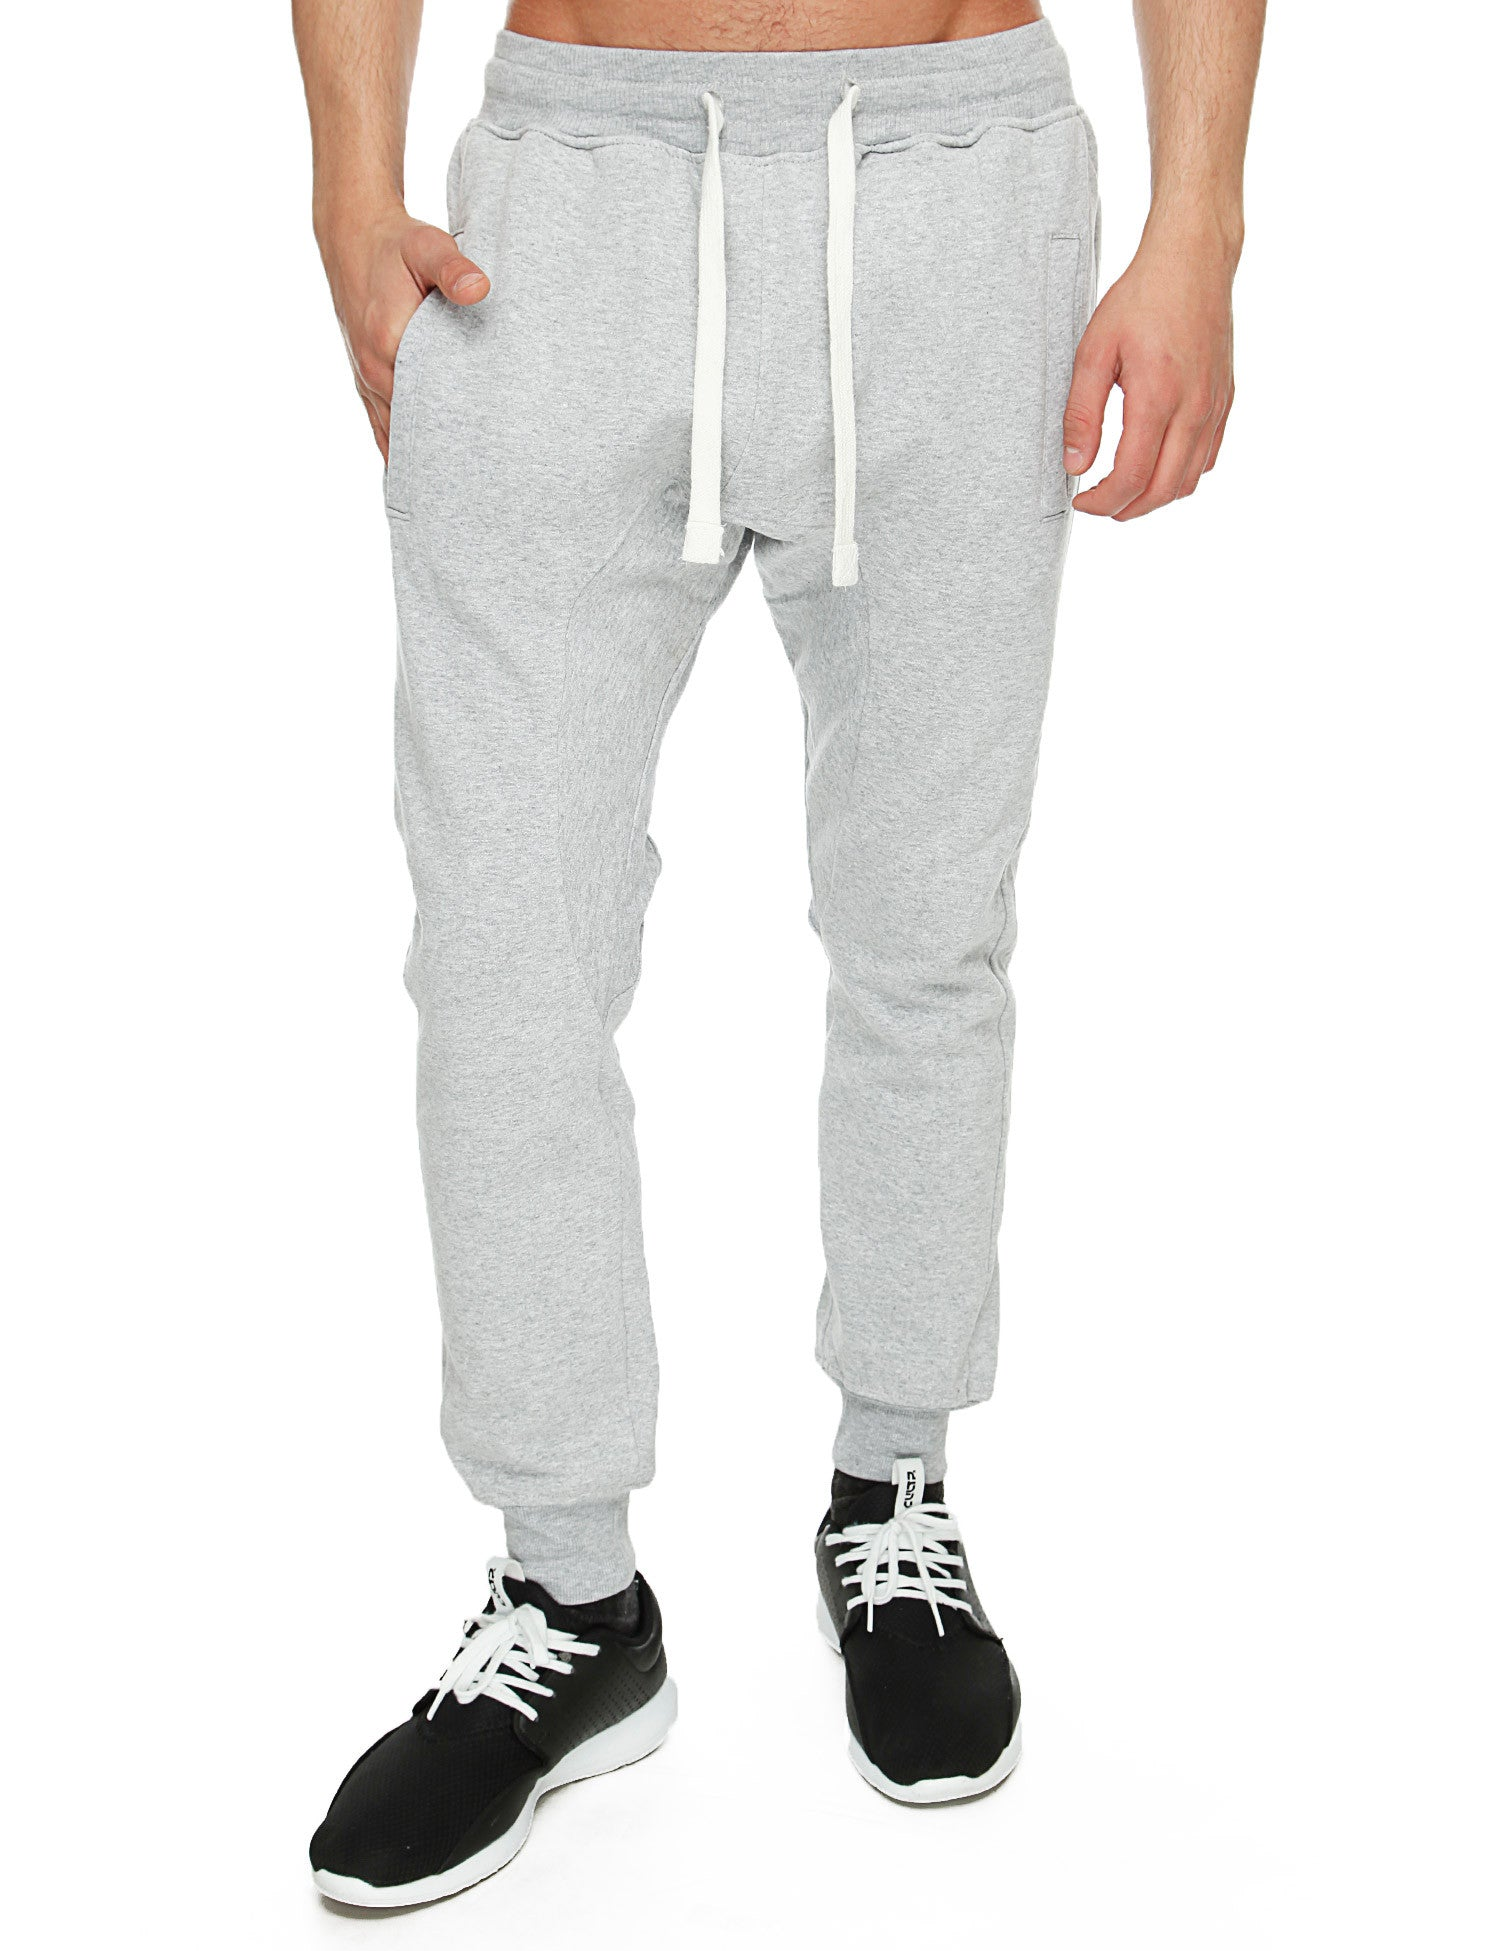 Imperious Sweatpant FP10 H. Grey